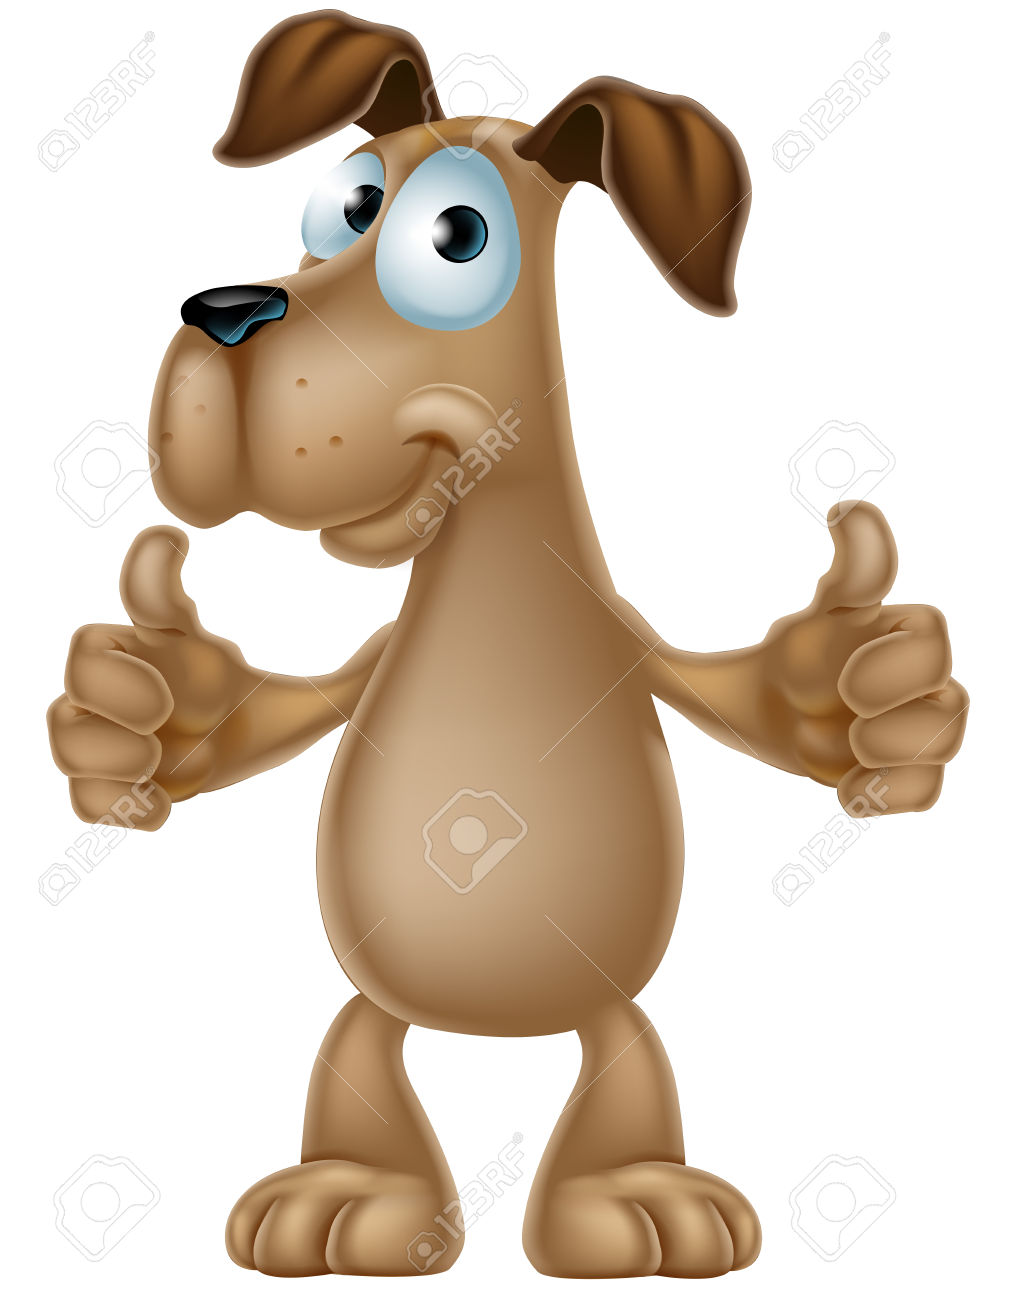 Thumbs up dog clipart jpg library library An Illustration Of A Cute Cartoon Dog Mascot Character Giving ... jpg library library